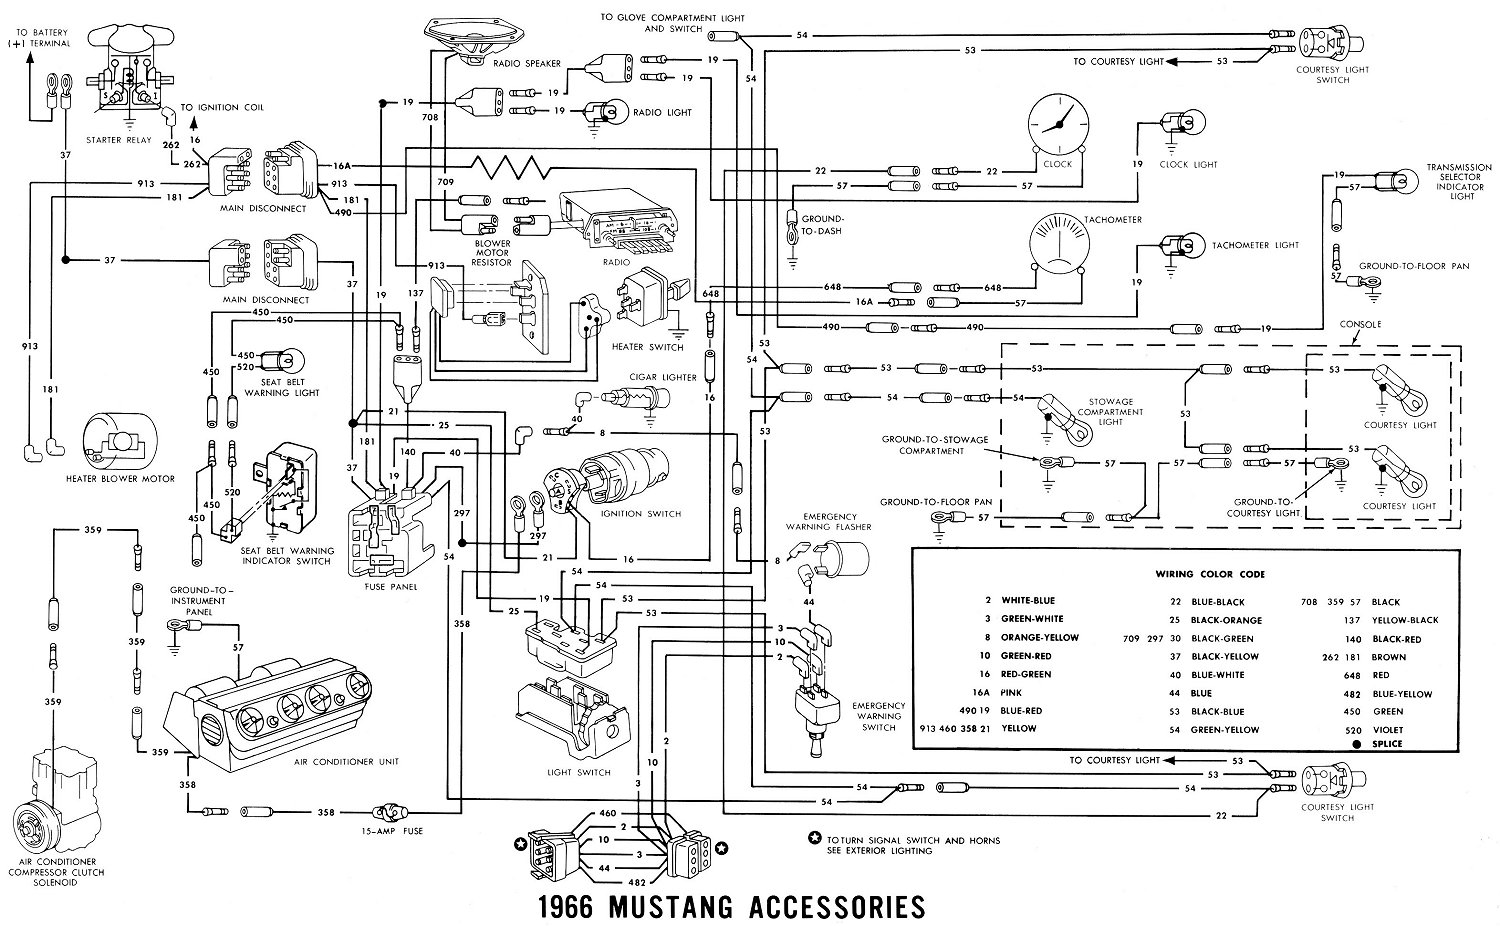 1966 Mustang Wiring Diagrams Average Joe Restoration. 1966 Mustang Accessories Schematic. Ford. 1966 Ford Mustang Starter Relay Wiring At Scoala.co